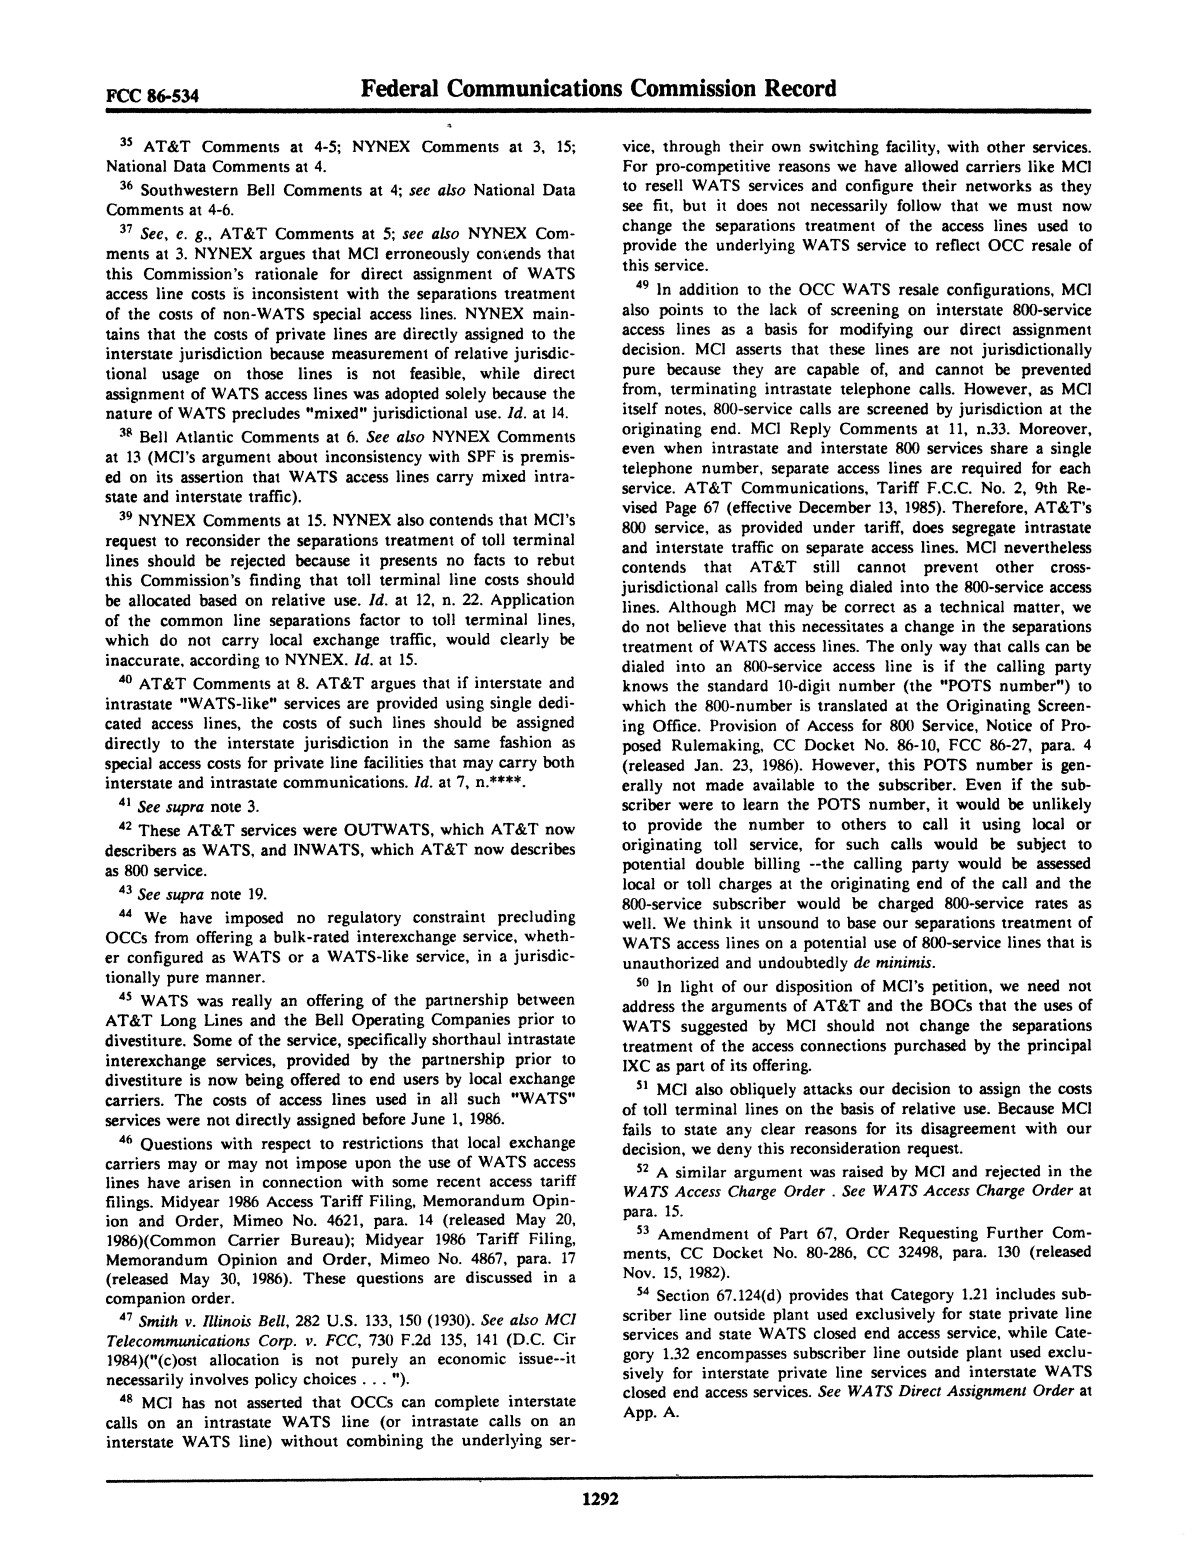 FCC Record, Volume 1, No. 7, Pages 1267 to 1368, December 22, 1986 - January 2, 1987                                                                                                      1292